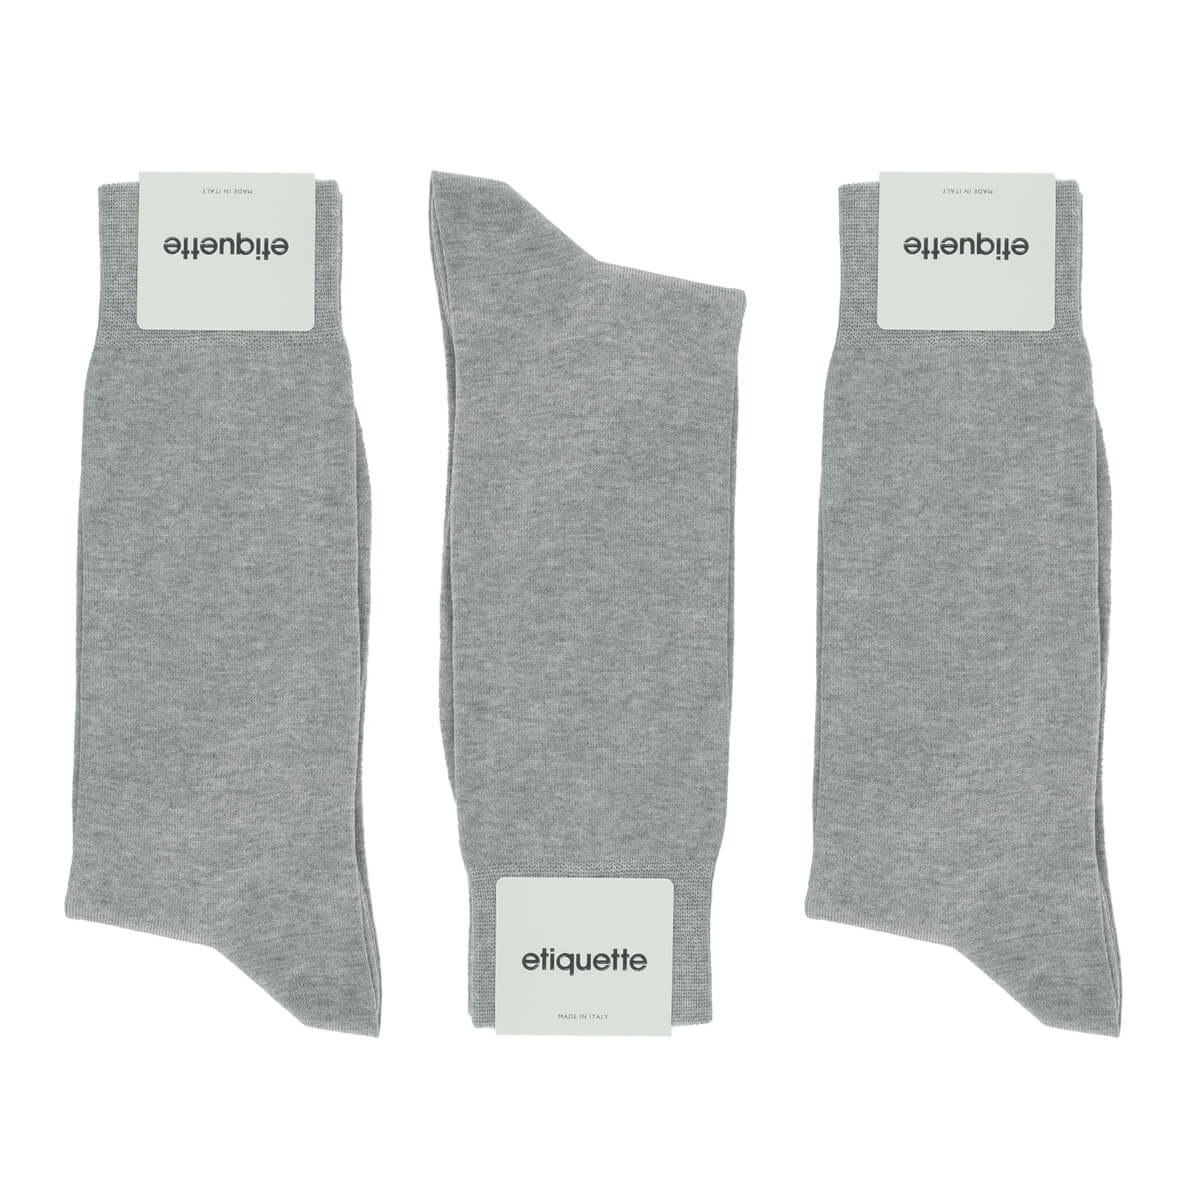 Mens Socks - Men's Crew Dress Socks 3 Pack - Light Grey⎪Etiquette Clothiers